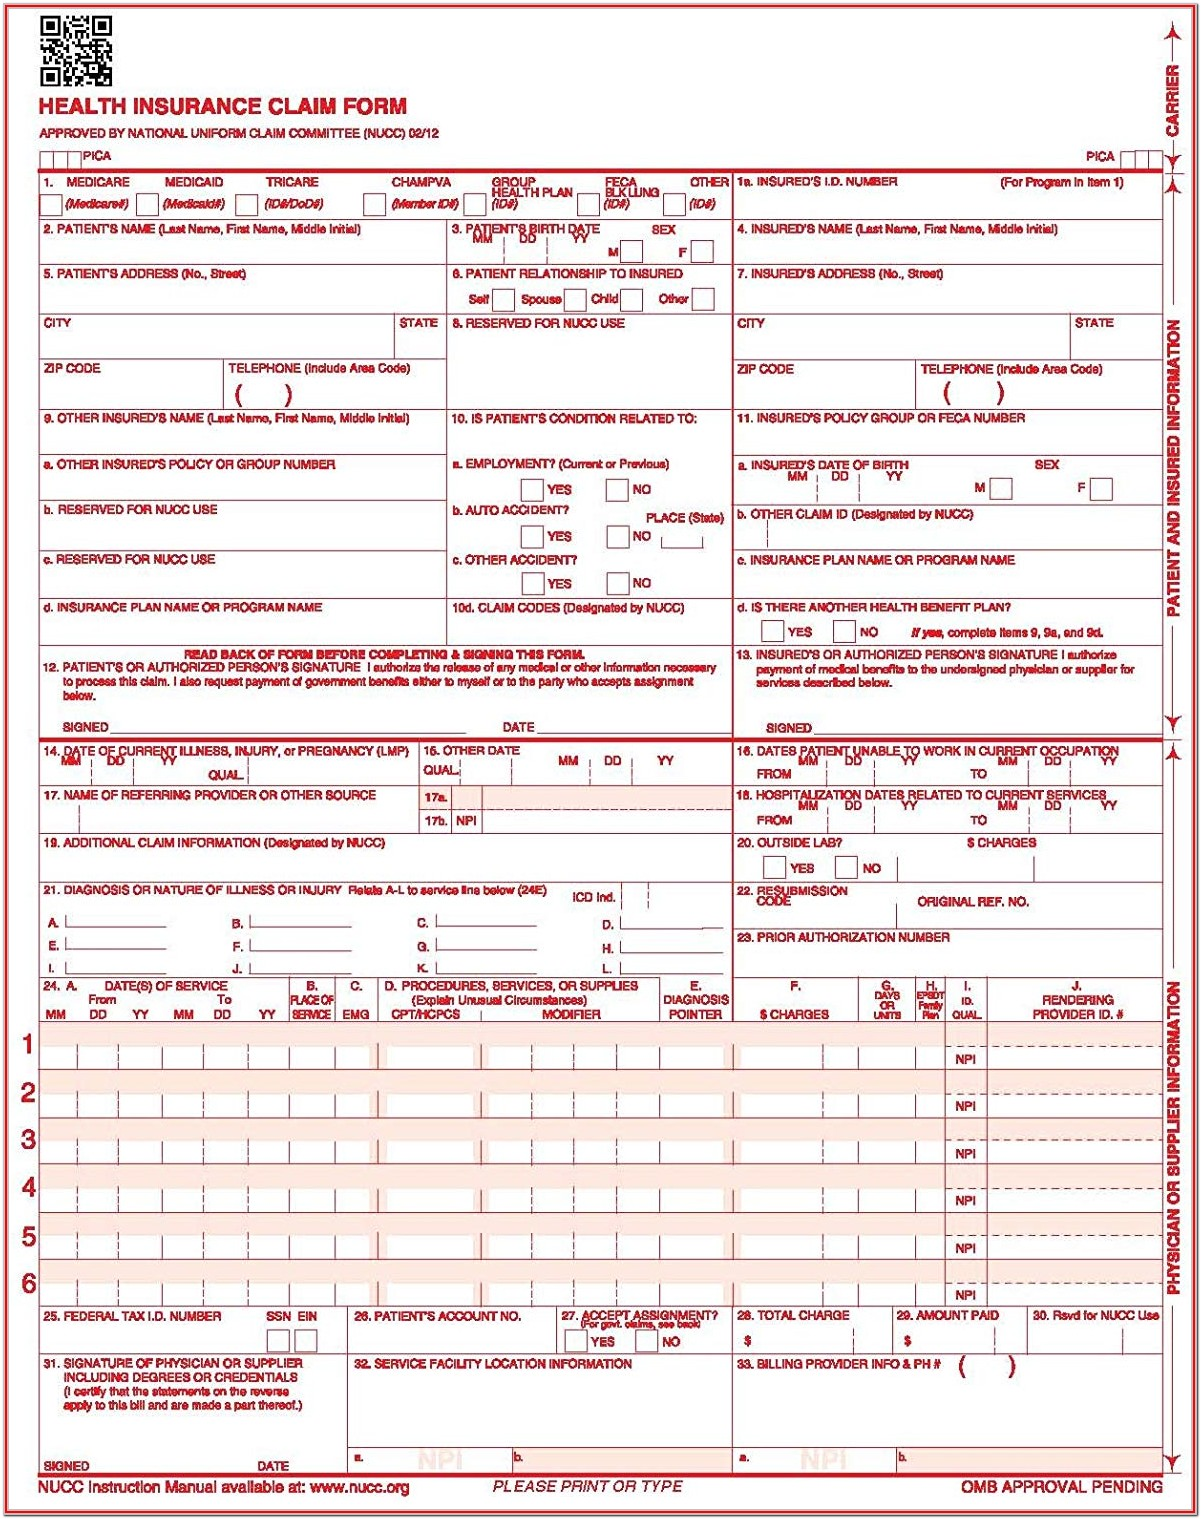 Cms 1500 Forms